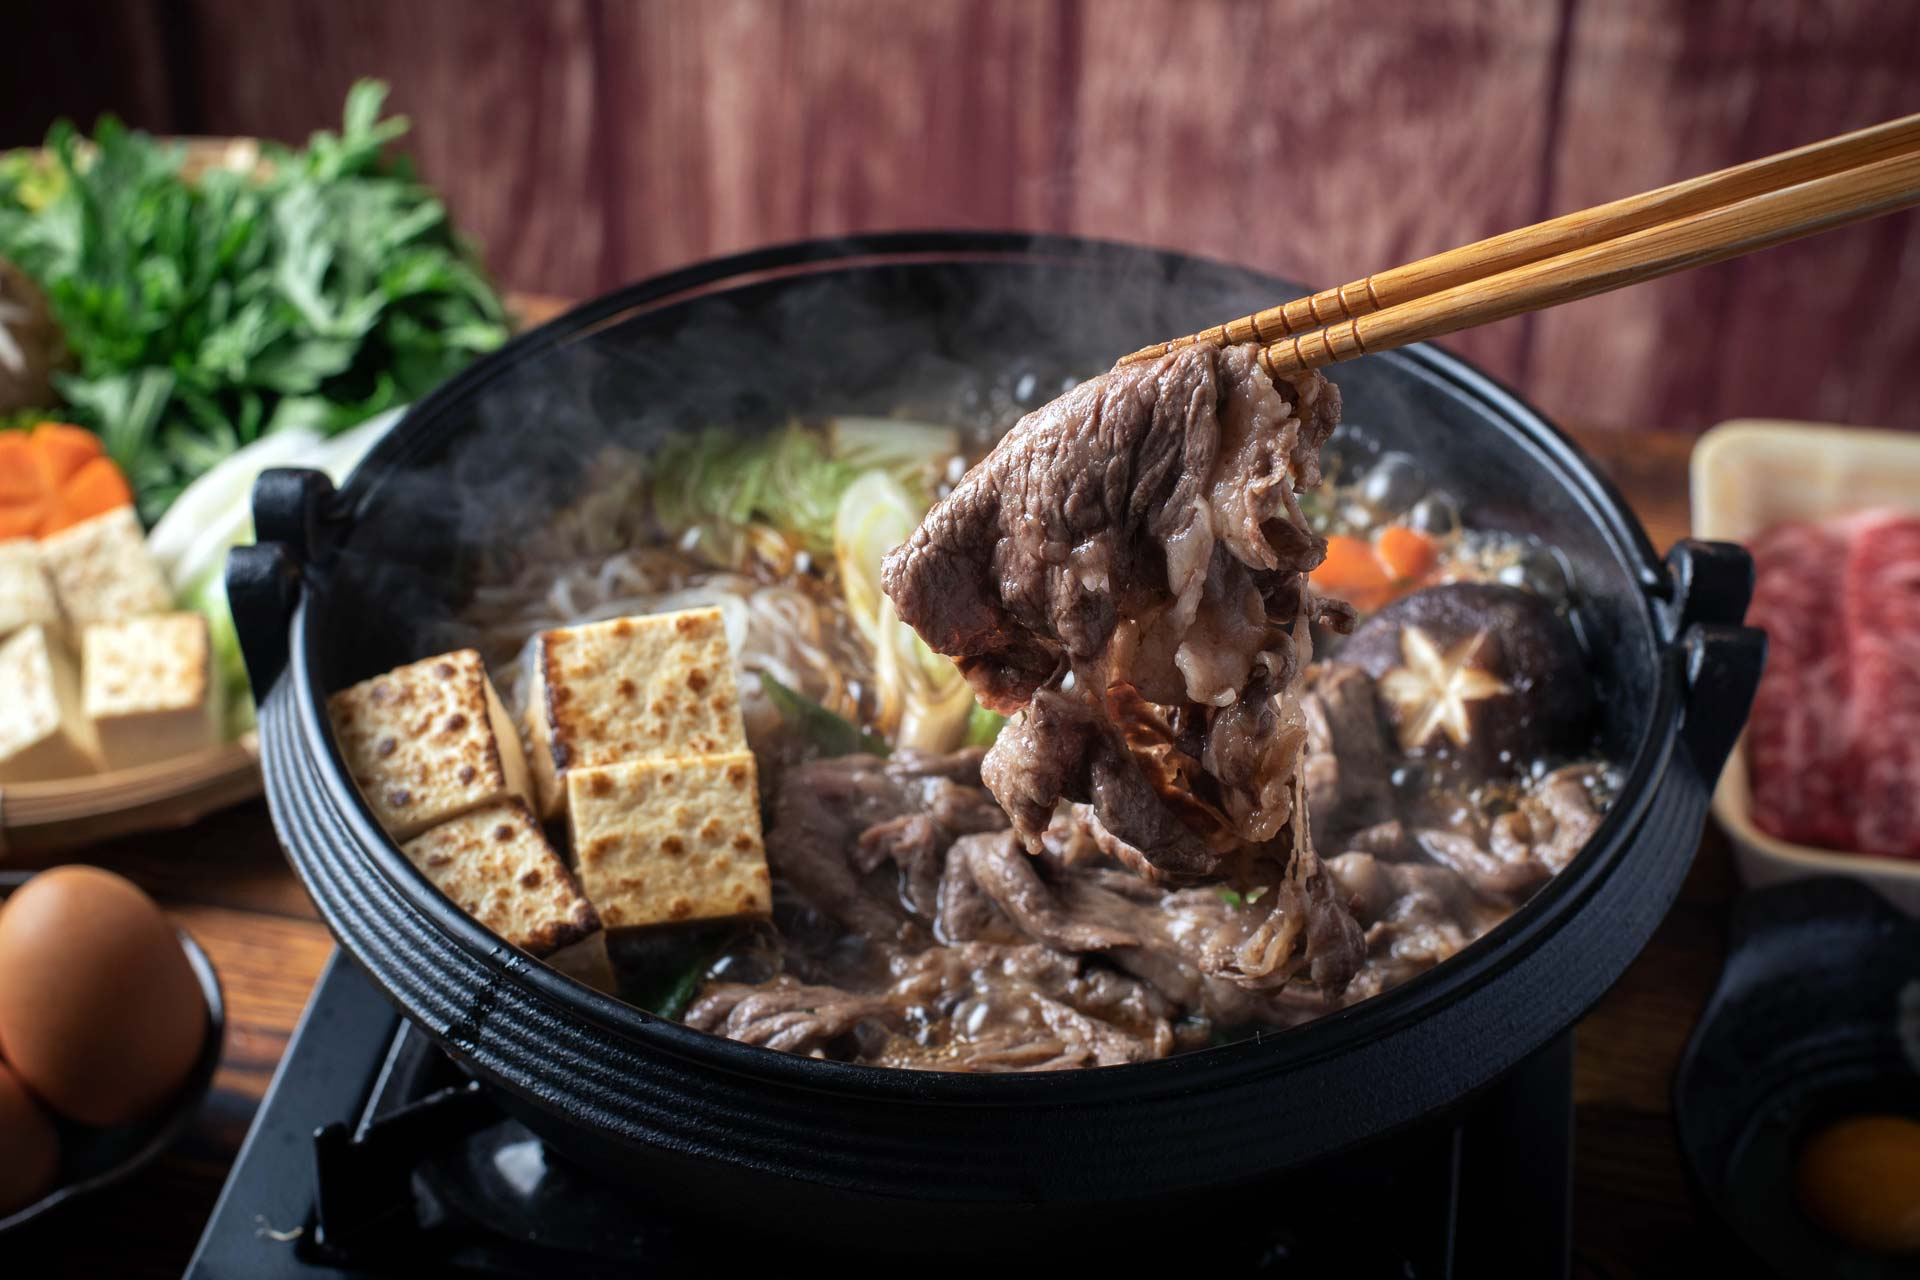 Chopsticks picking up cooked beef out of a bowl of soup